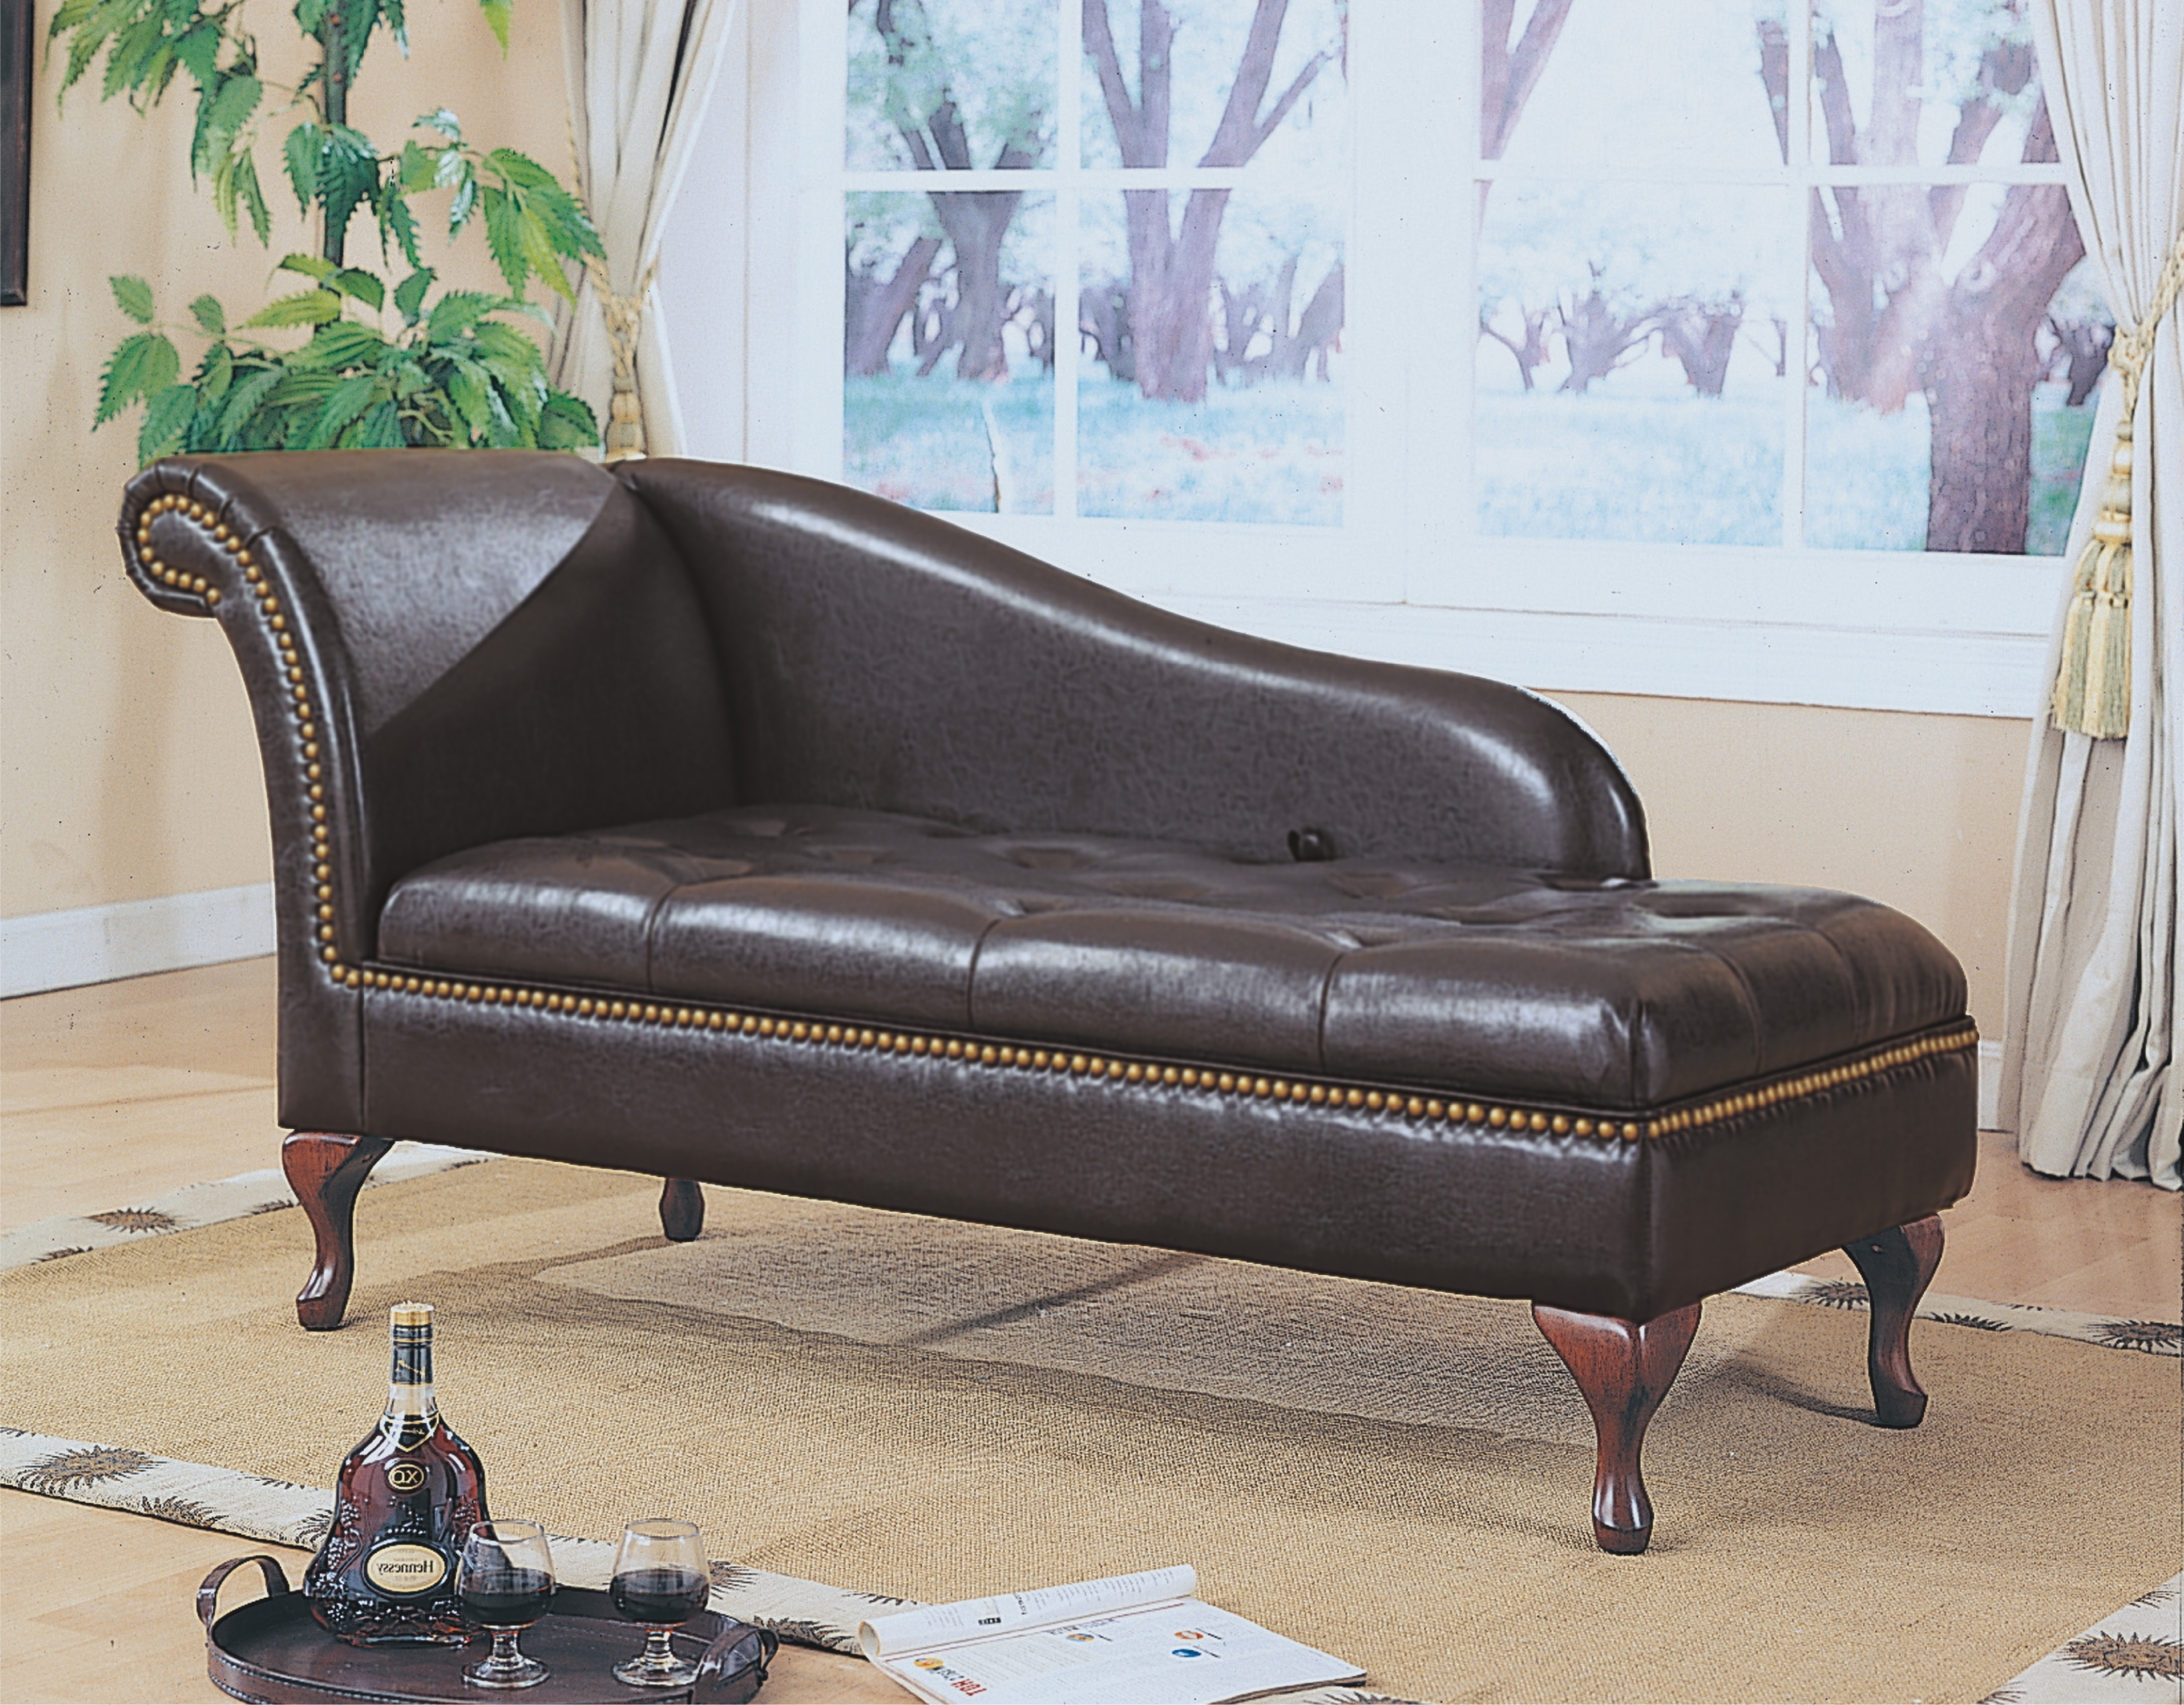 Leather Lounge Sofas Within Recent Chaise Lounge Sofa Leather Theamphletts Com Regarding Decorations (View 7 of 20)